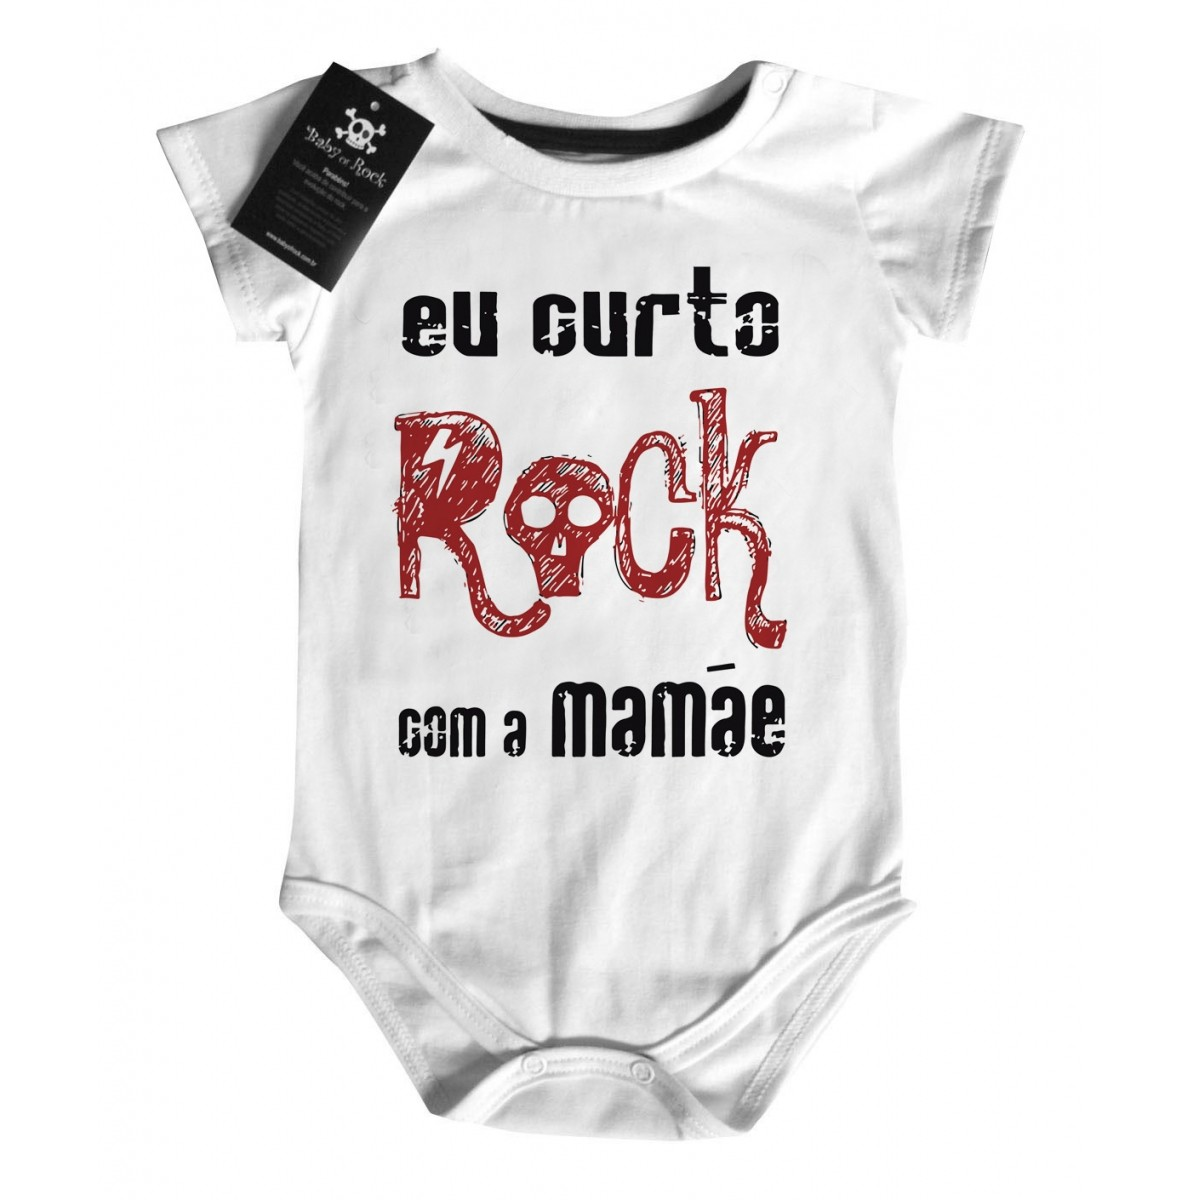 Body Eu Curto Rock com a Mamãe - White  - Baby Monster S/A